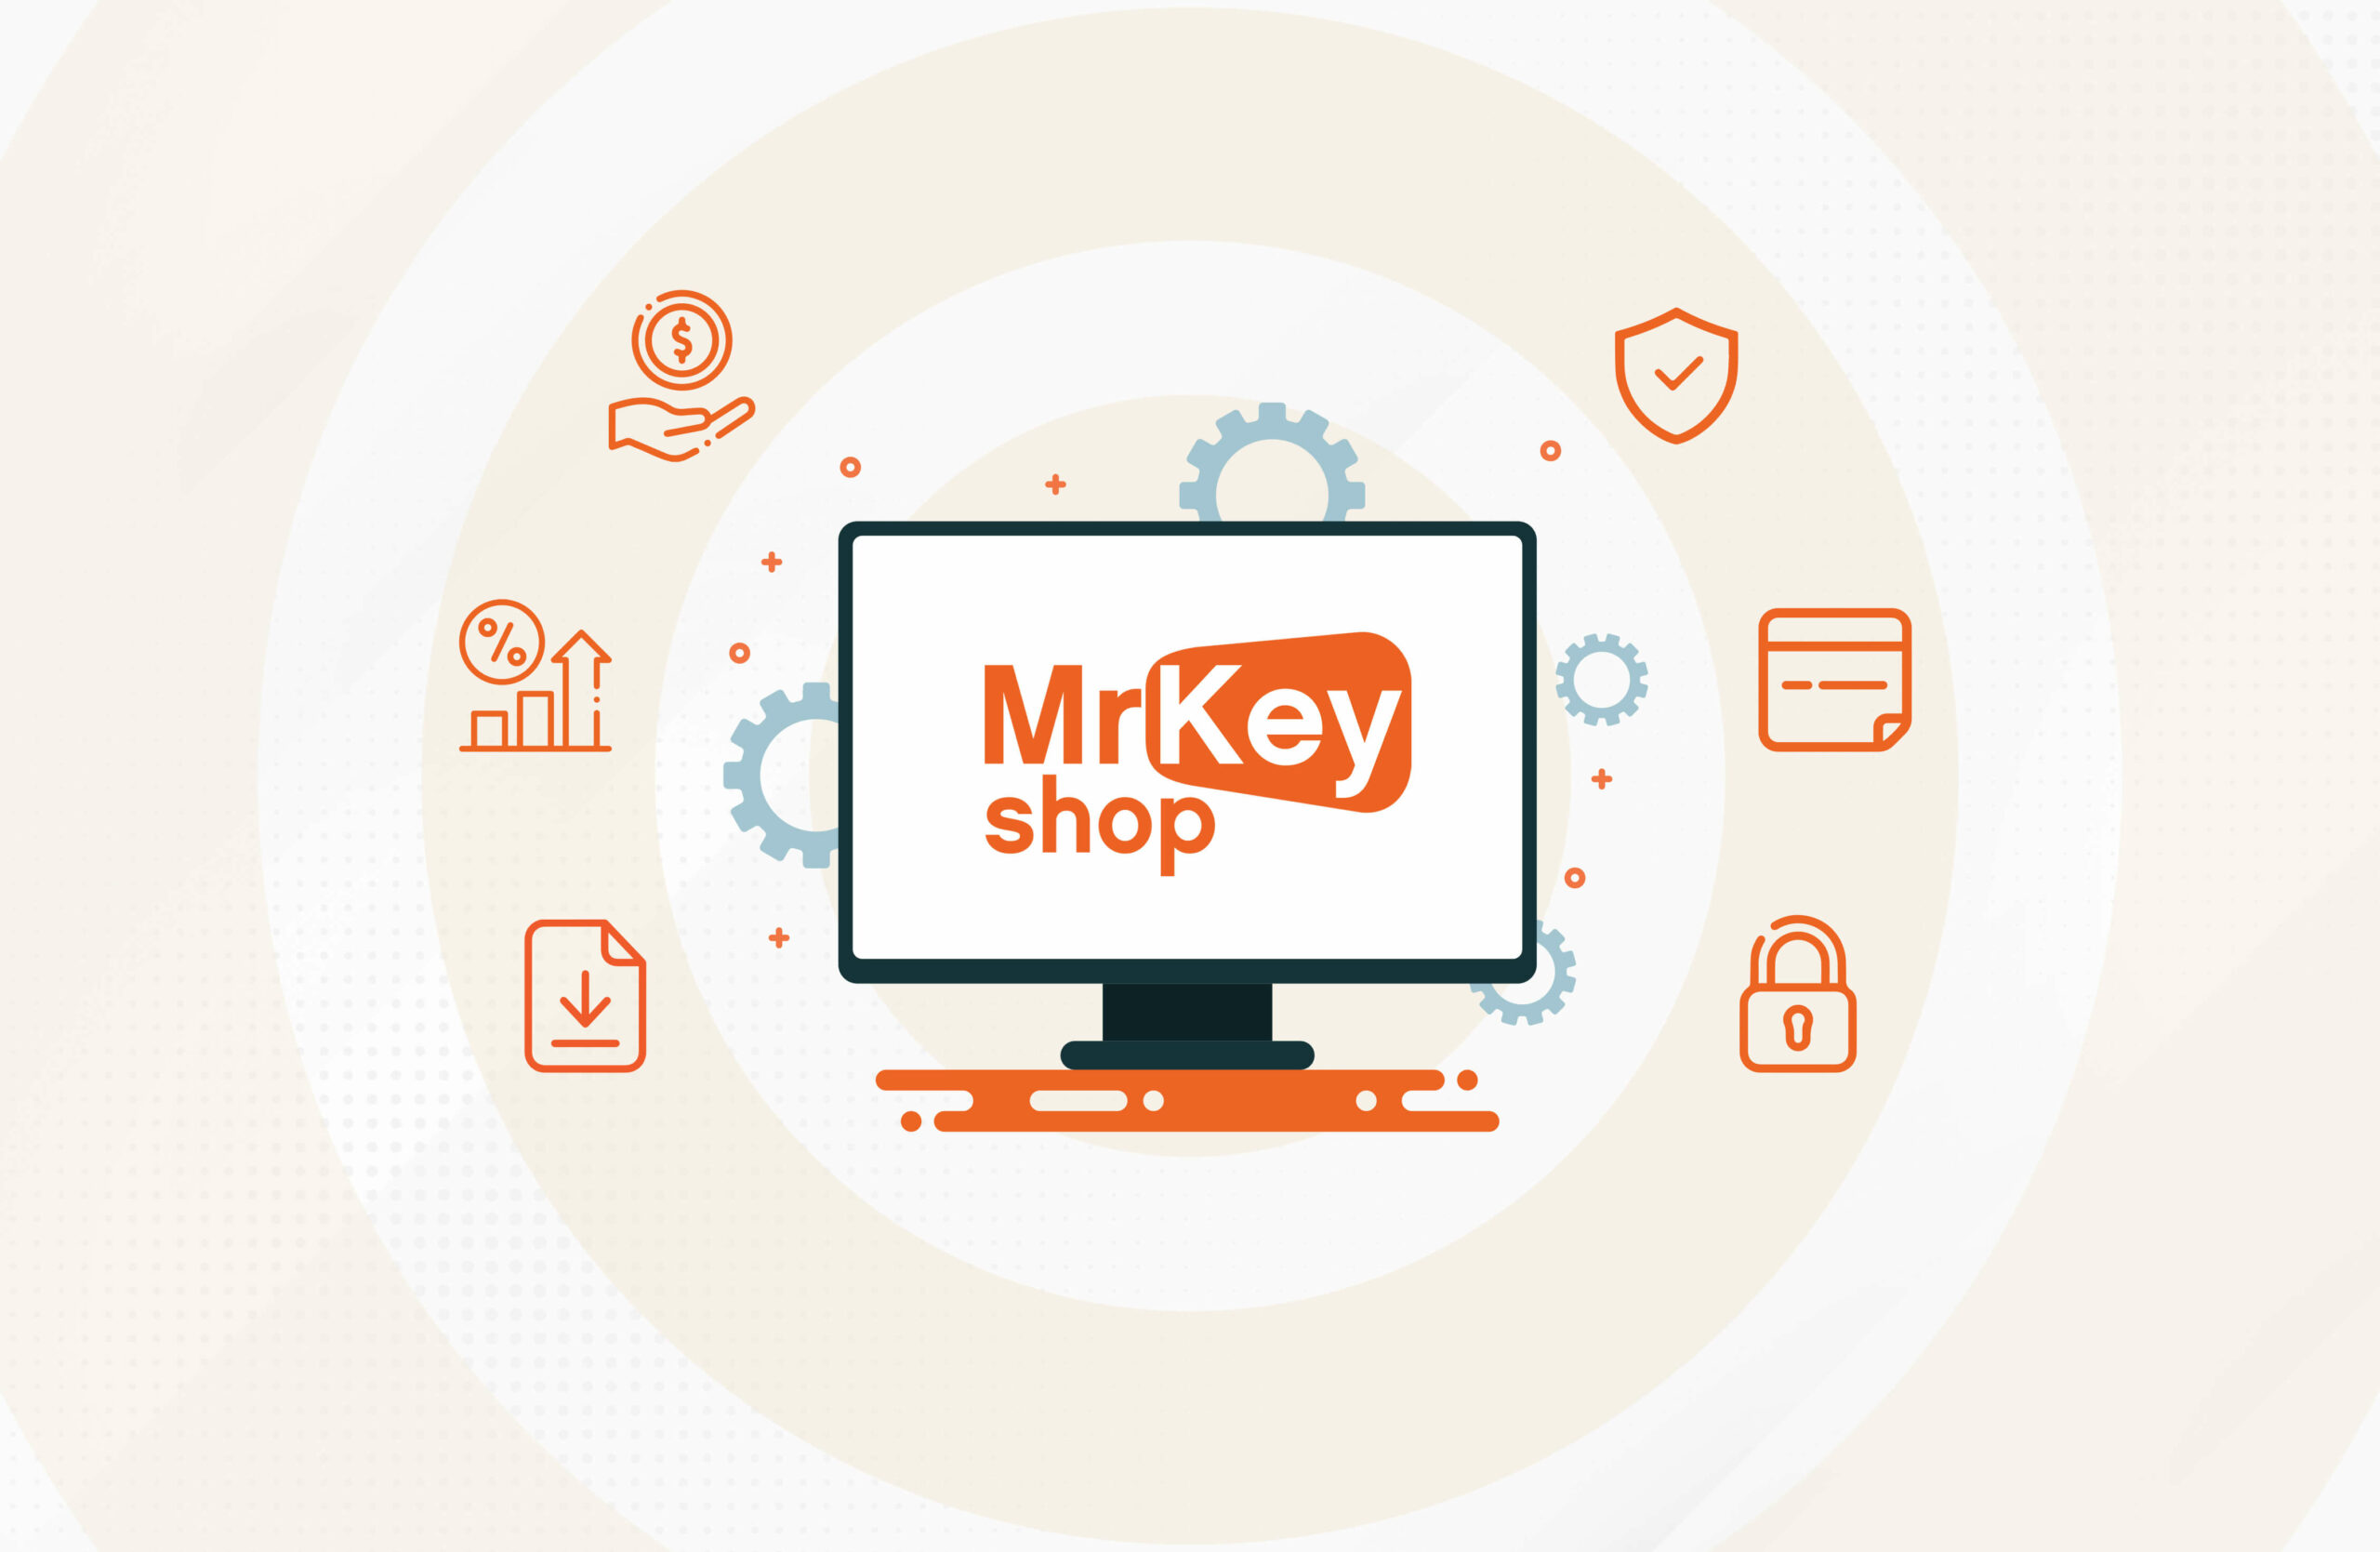 How to Buy Office 2019 from Mr Key Shop at cheapest Price